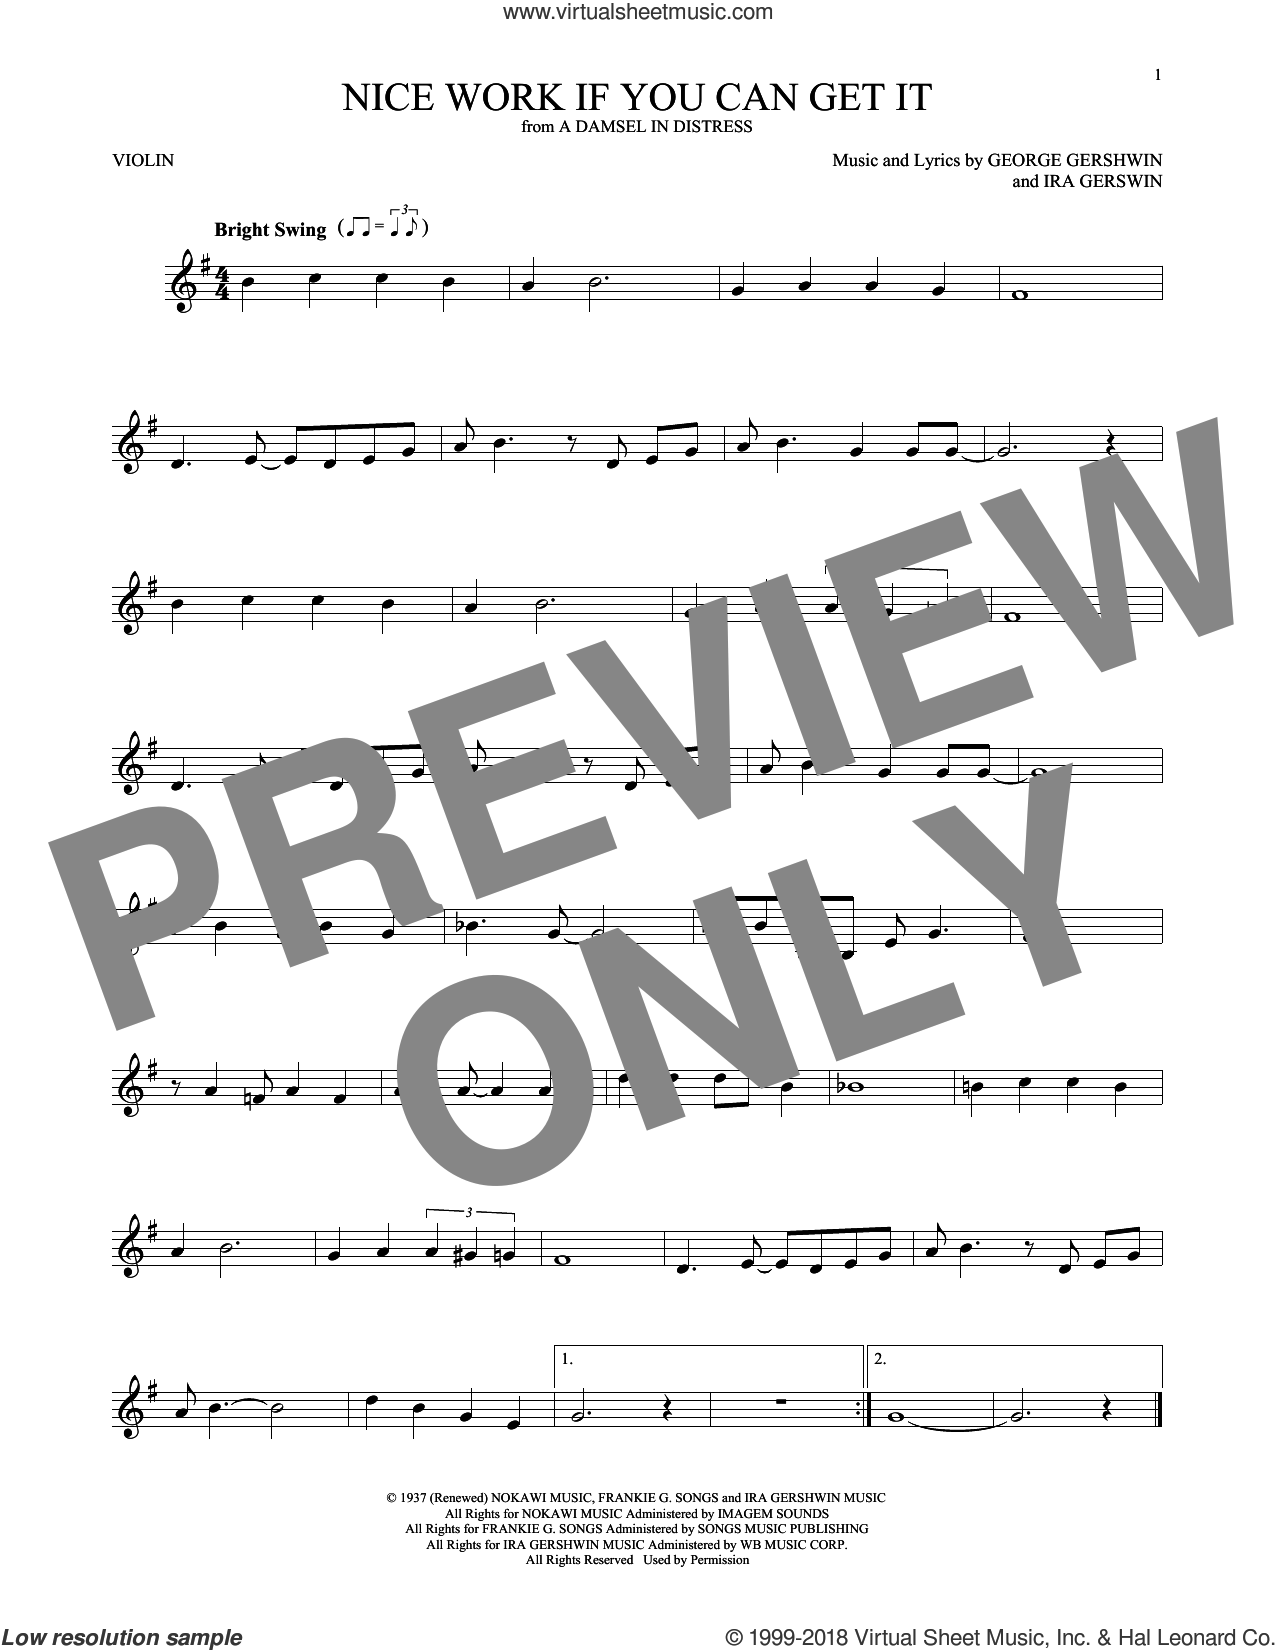 Nice Work If You Can Get It sheet music for violin solo by Frank Sinatra, George Gershwin and Ira Gershwin, intermediate. Score Image Preview.